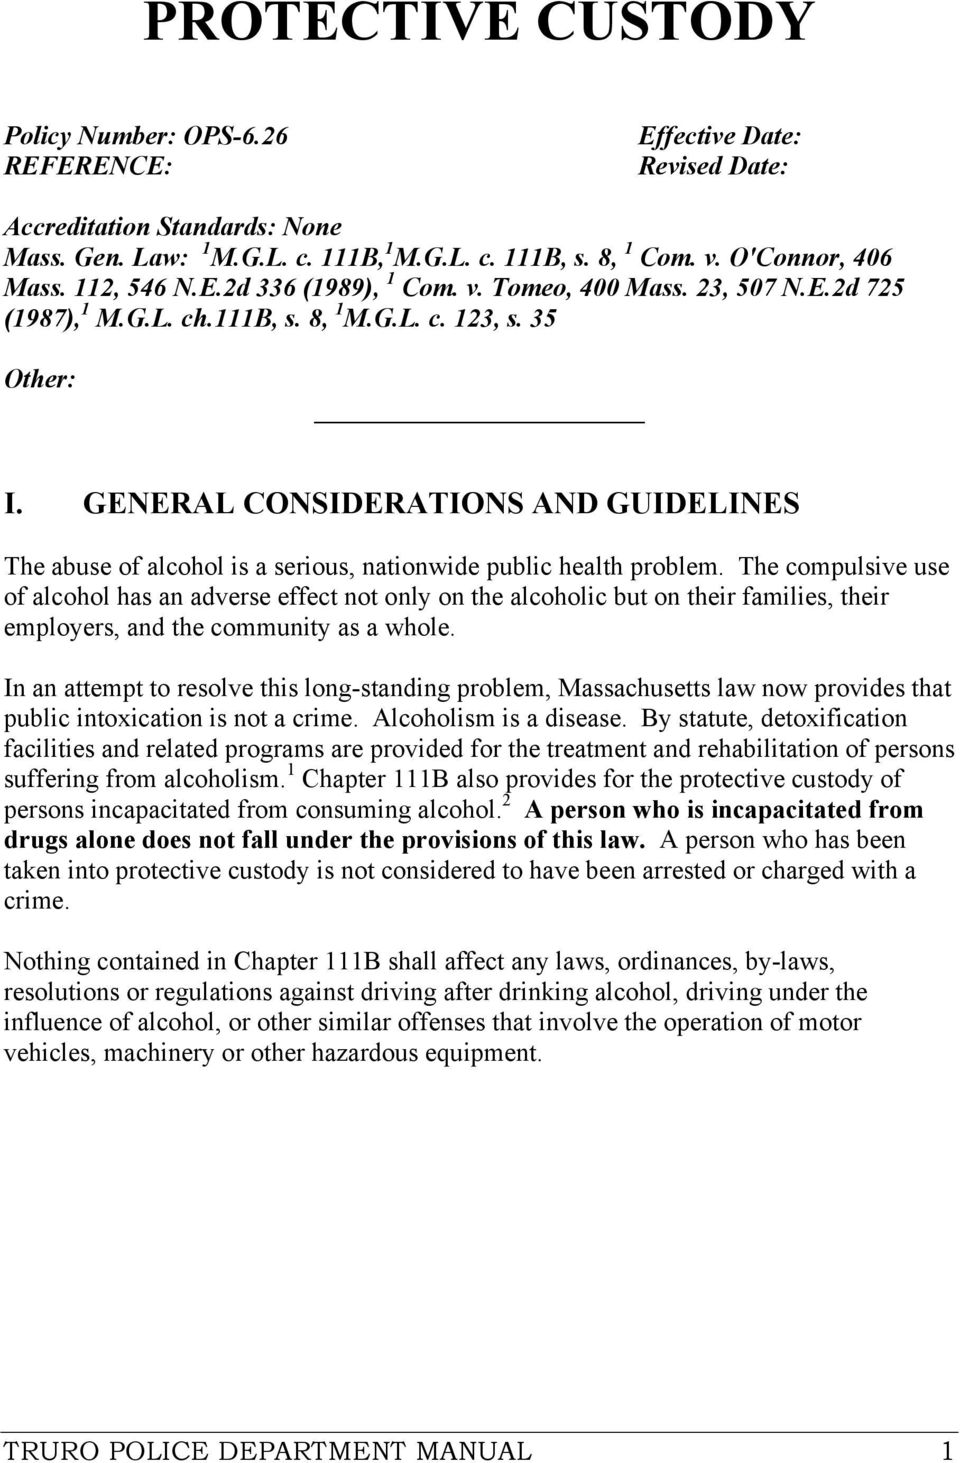 GENERAL CONSIDERATIONS AND GUIDELINES The abuse of alcohol is a serious, nationwide public health problem.